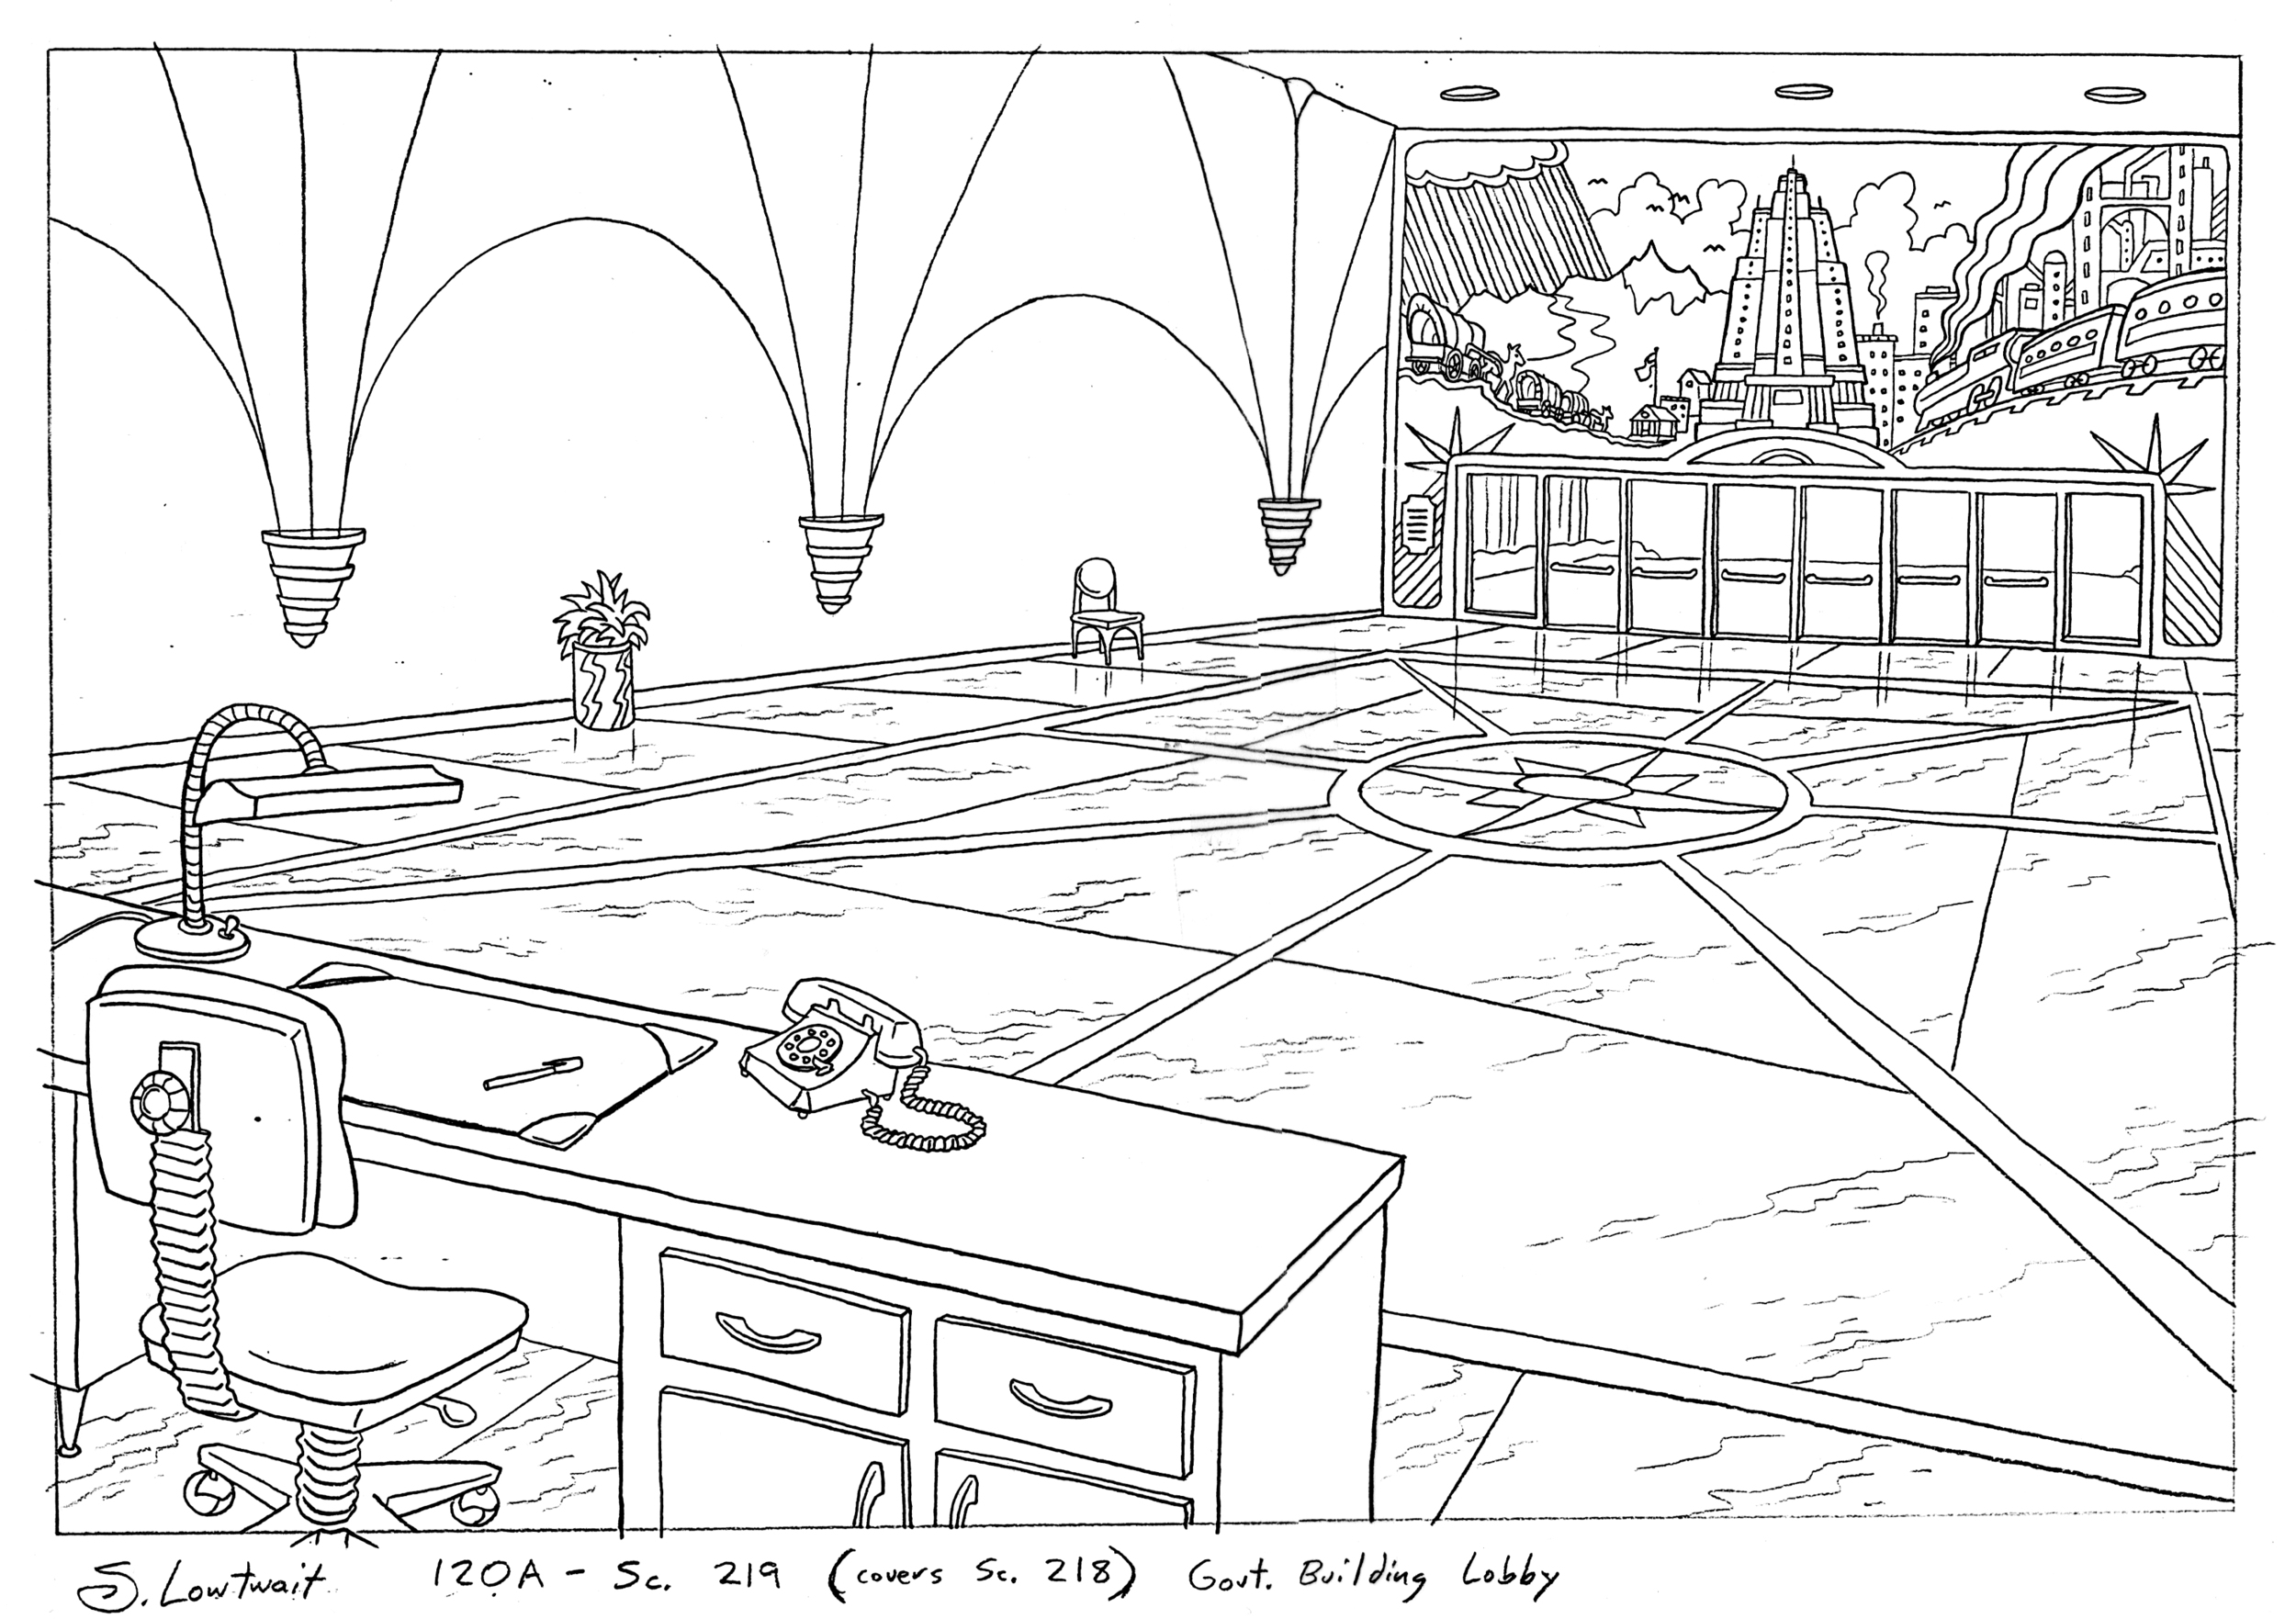 I'm rather fond of that mural I made up for this government building. And I think that lone chair is funny.